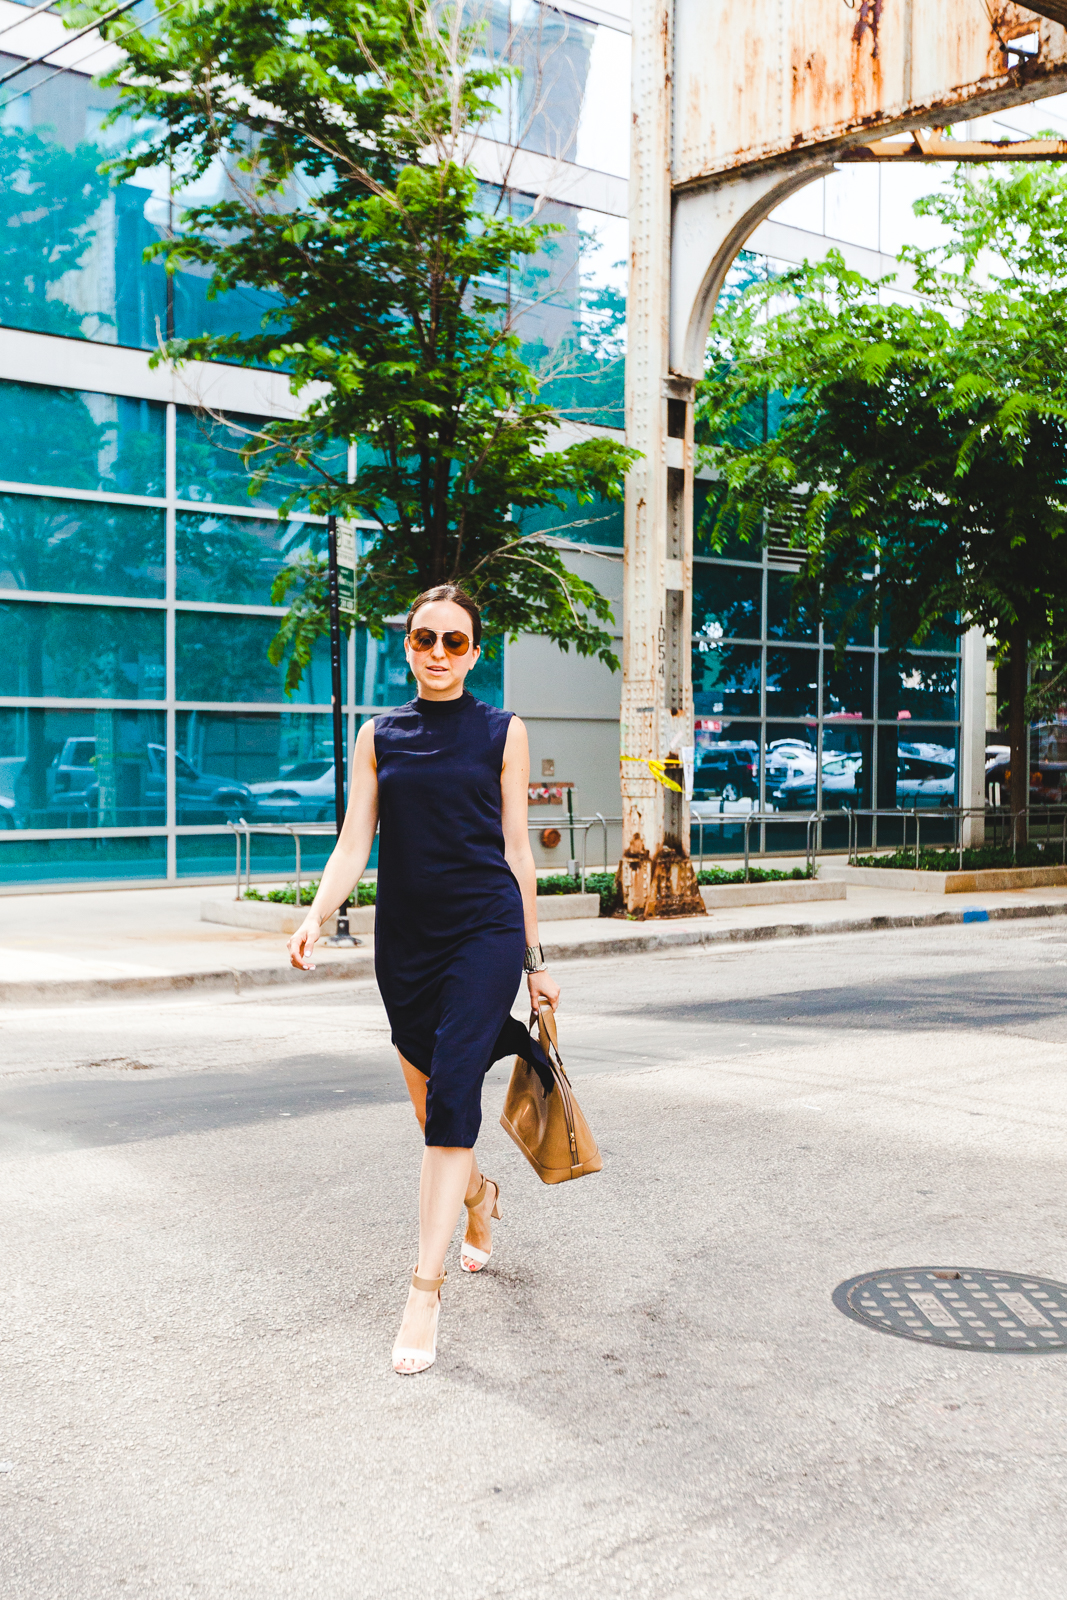 Street style tip of the day: Simple and chic